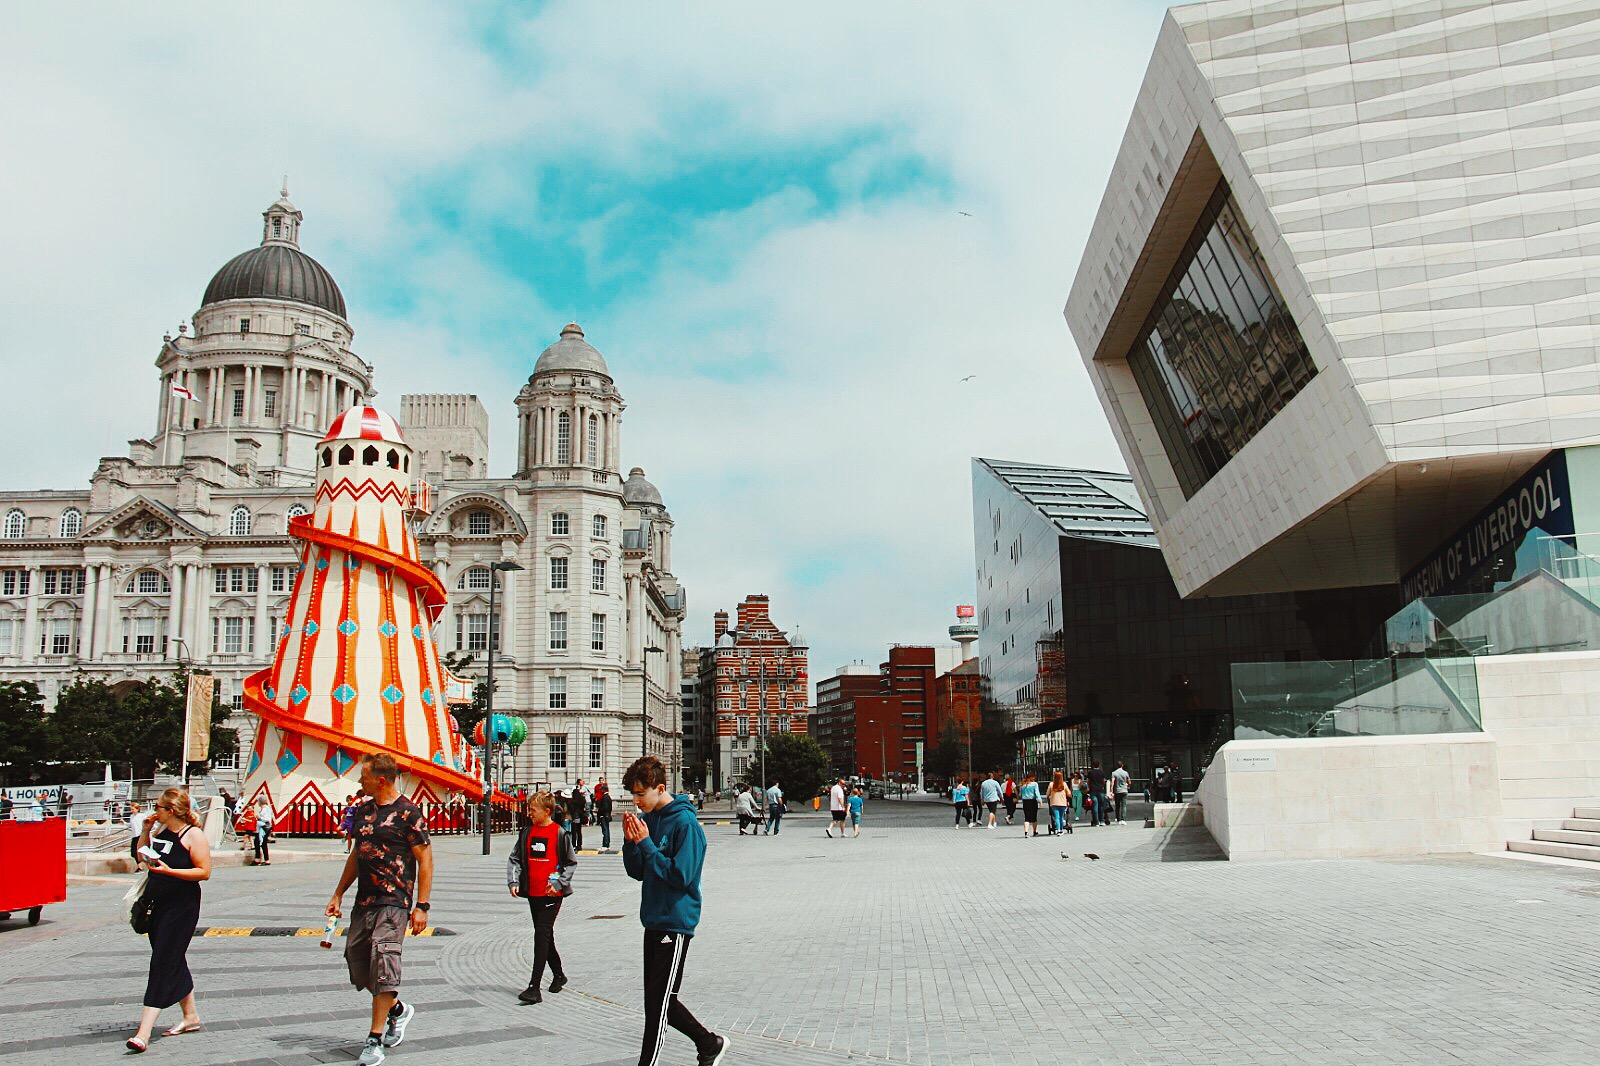 How I spent 24 hours in Liverpool